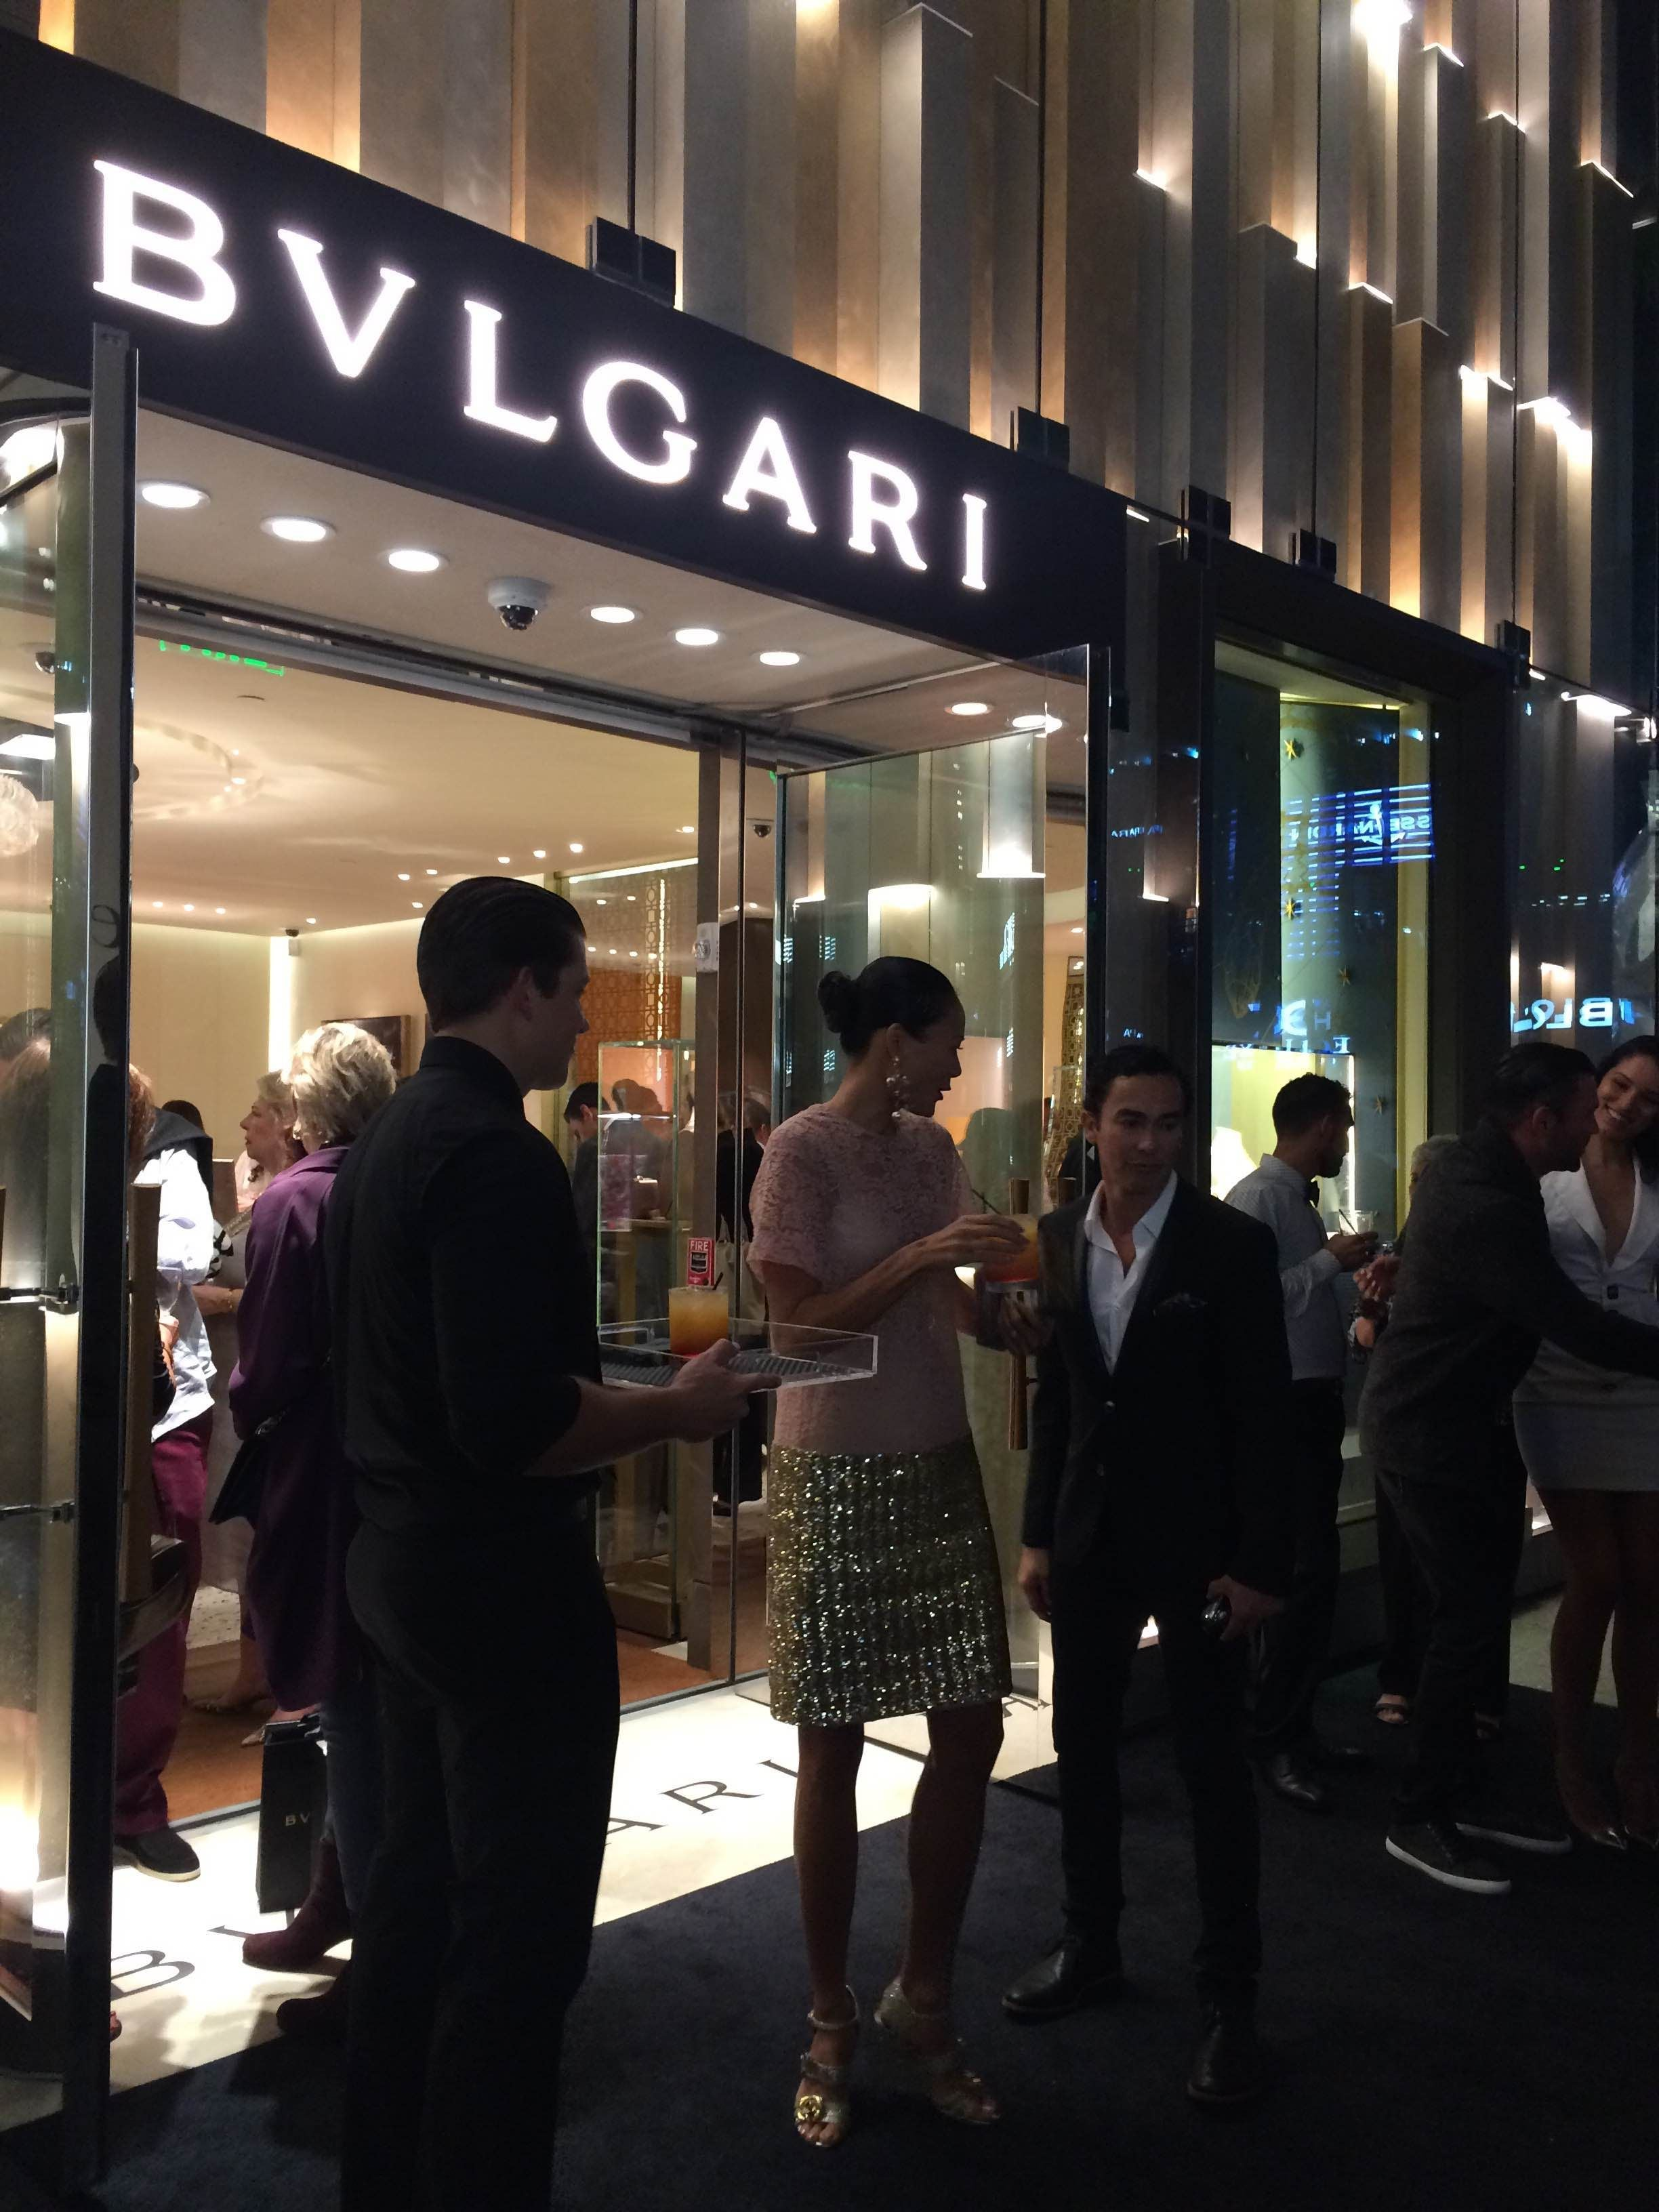 Plato en Bvlgari Miami Design District